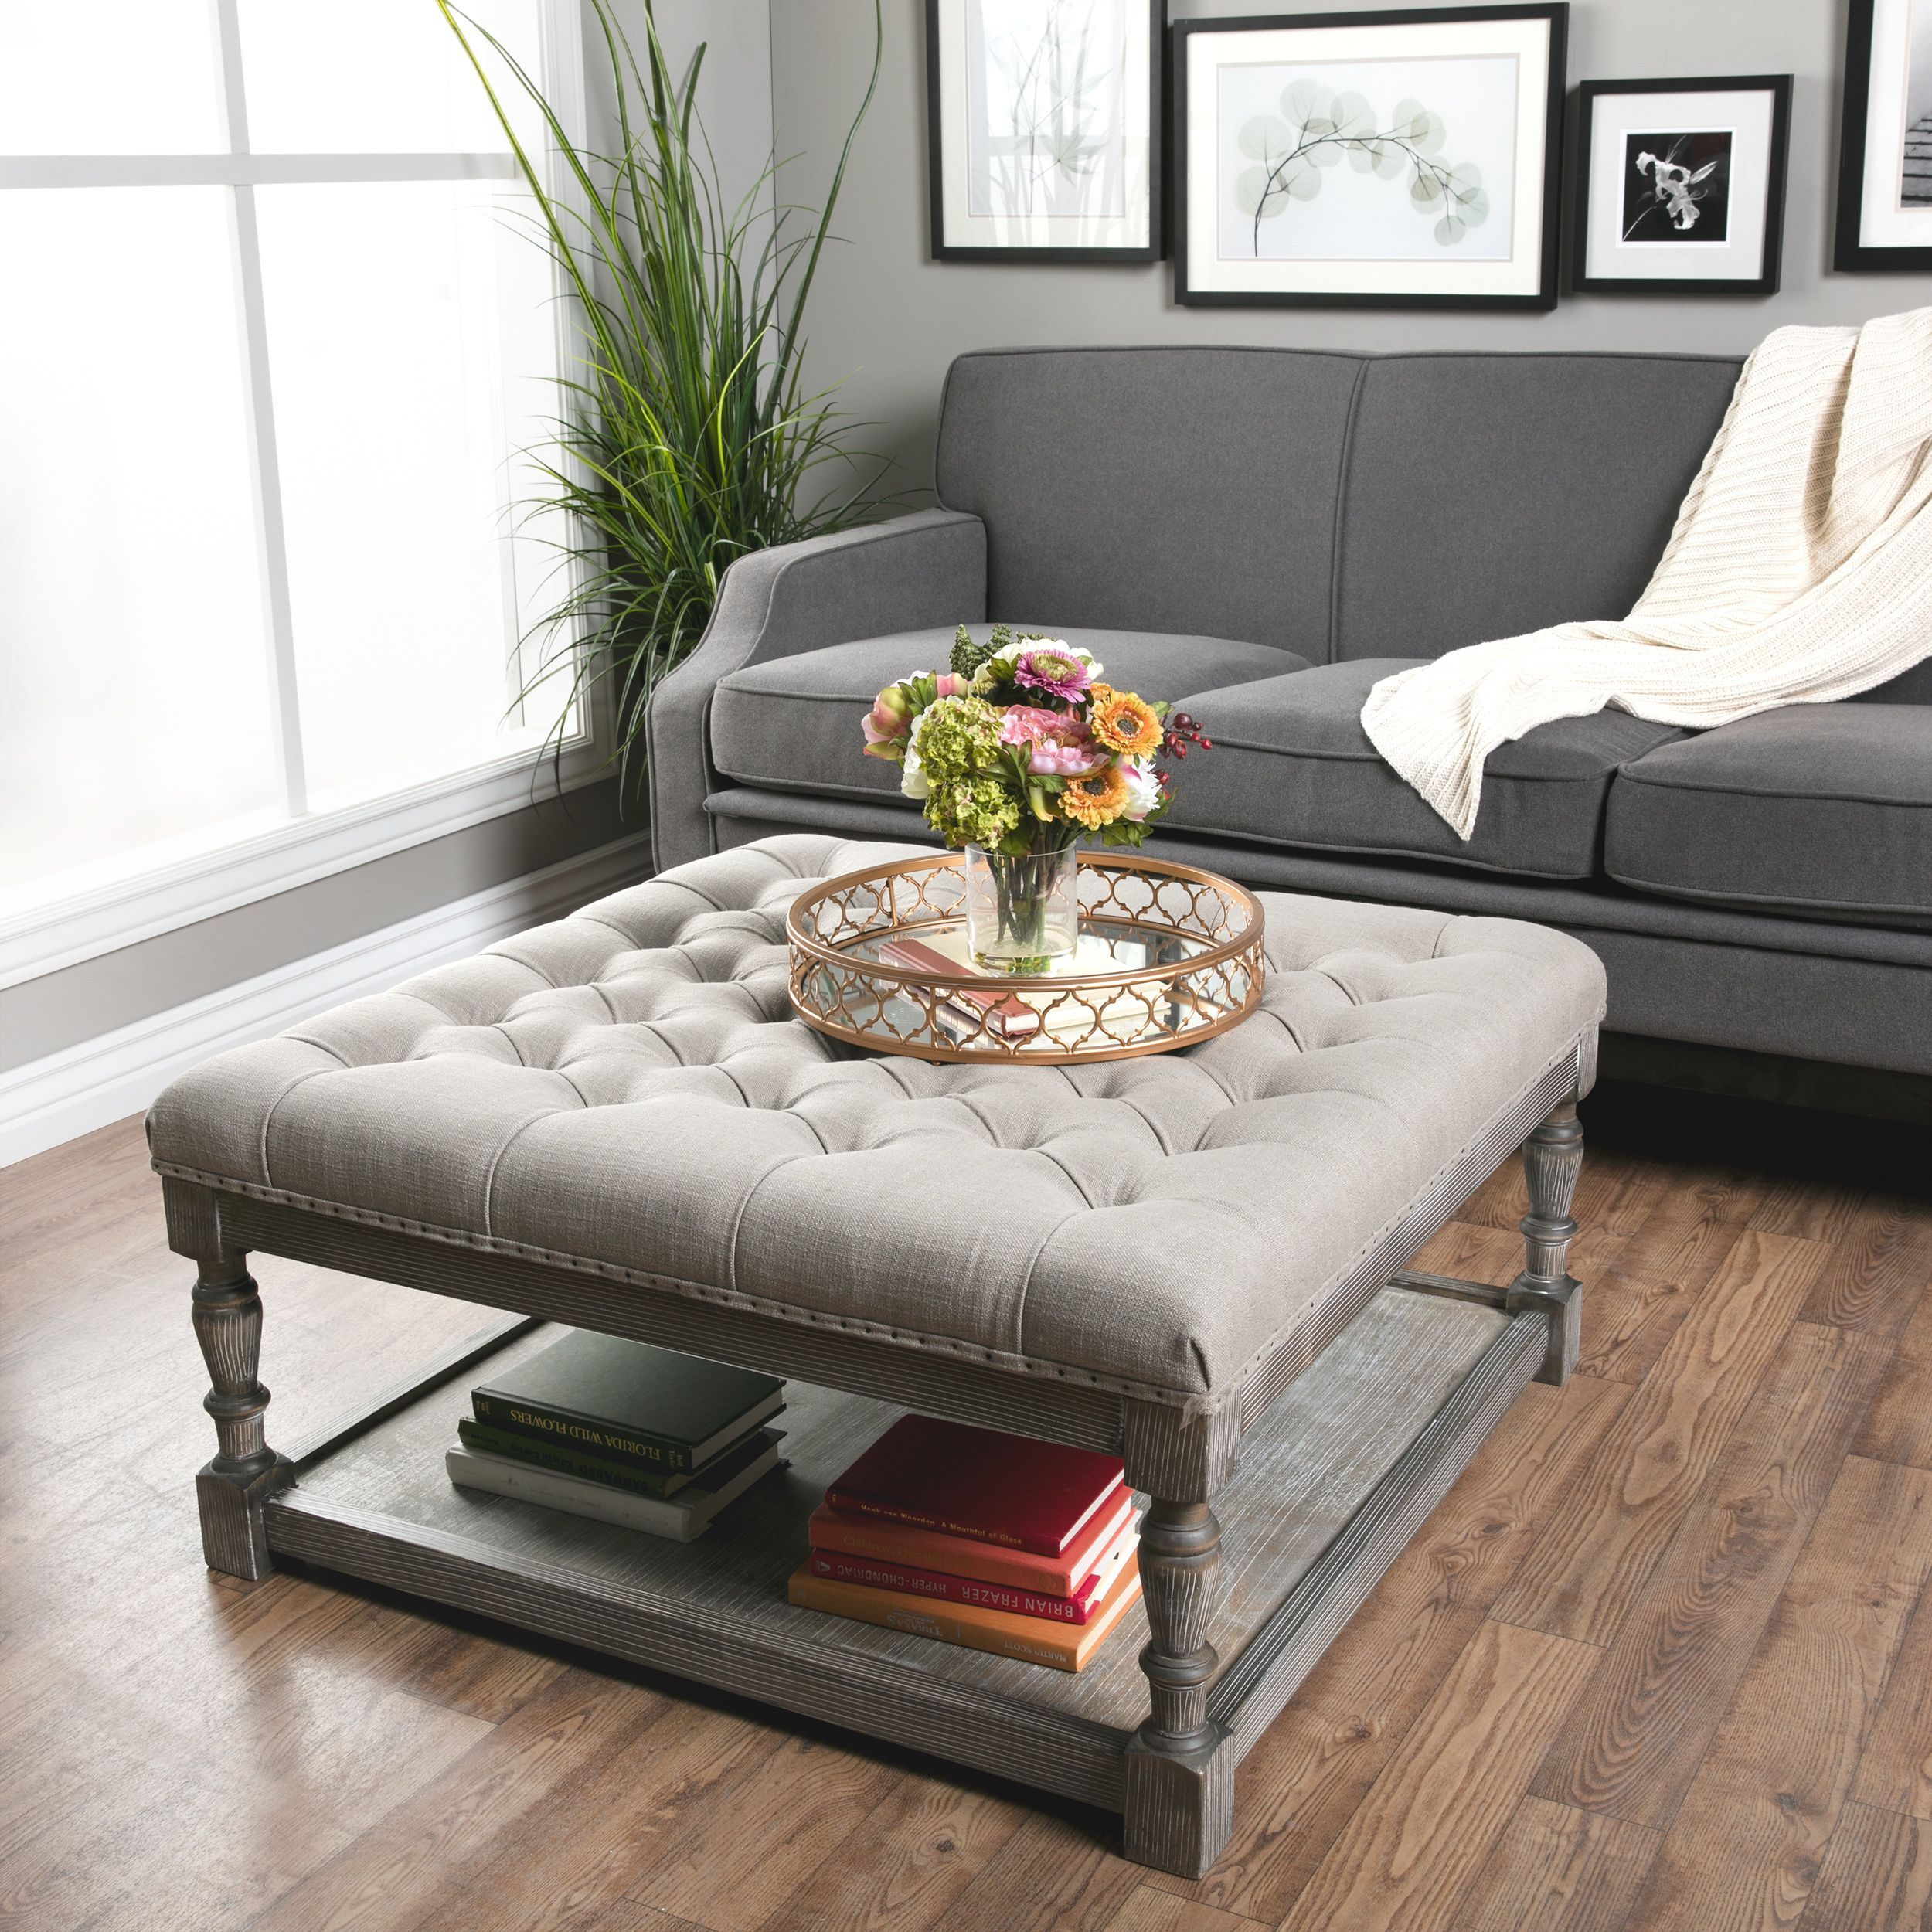 Creston Linen Tufted Cocktail Ottoman Home Ideas Decoracion De